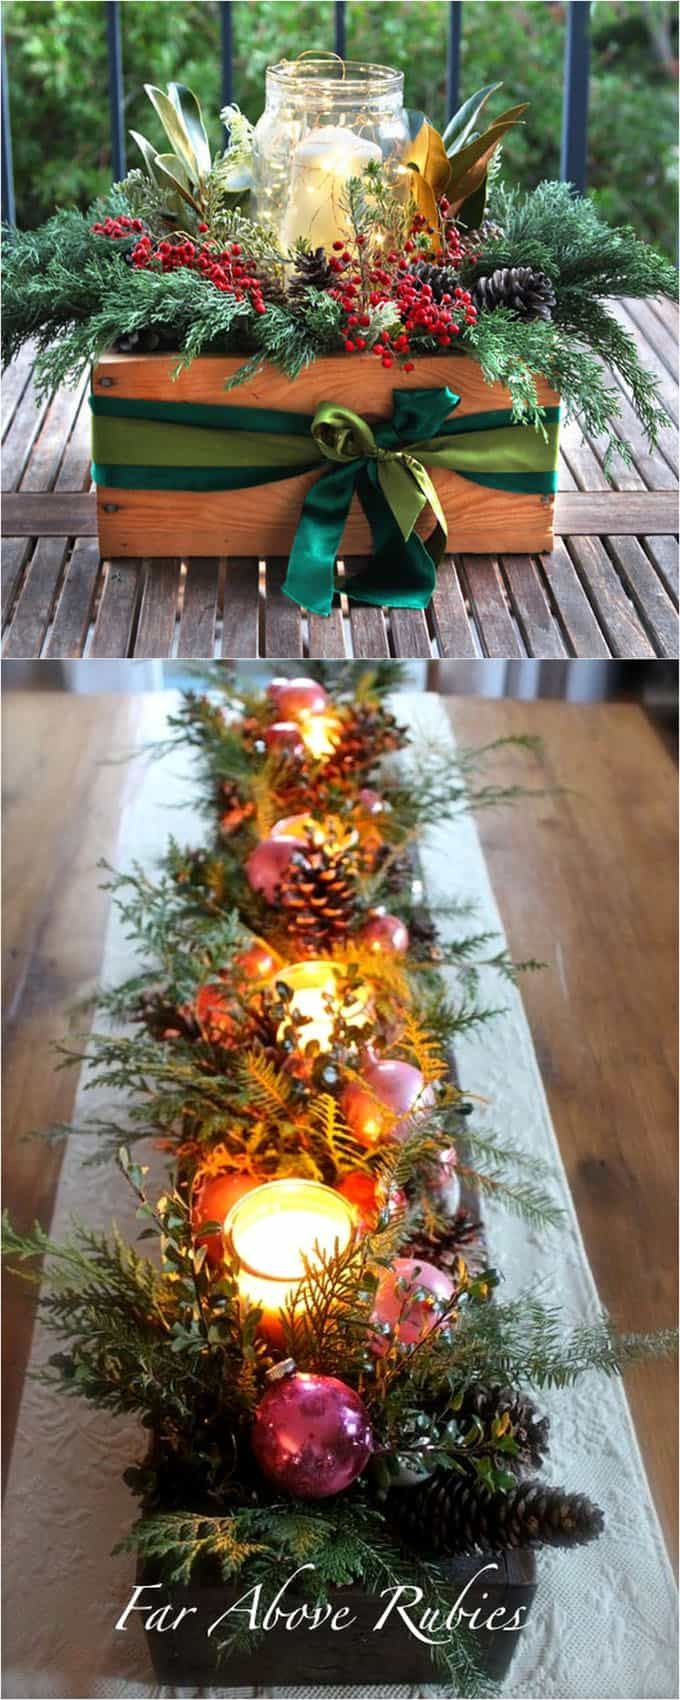 27 DIY Thanksgiving & Christmas Table Decorations